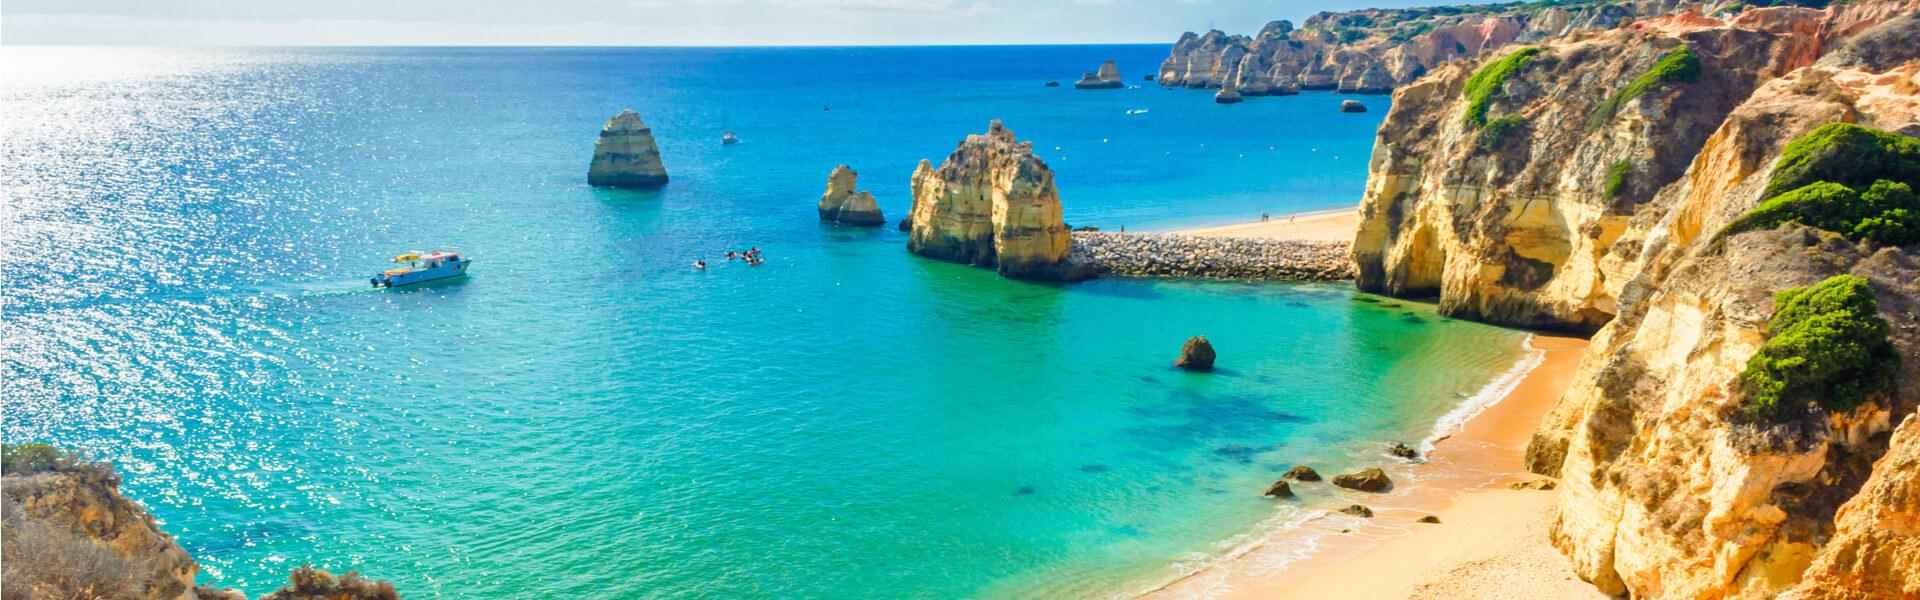 Campings zoeken in de Algarve